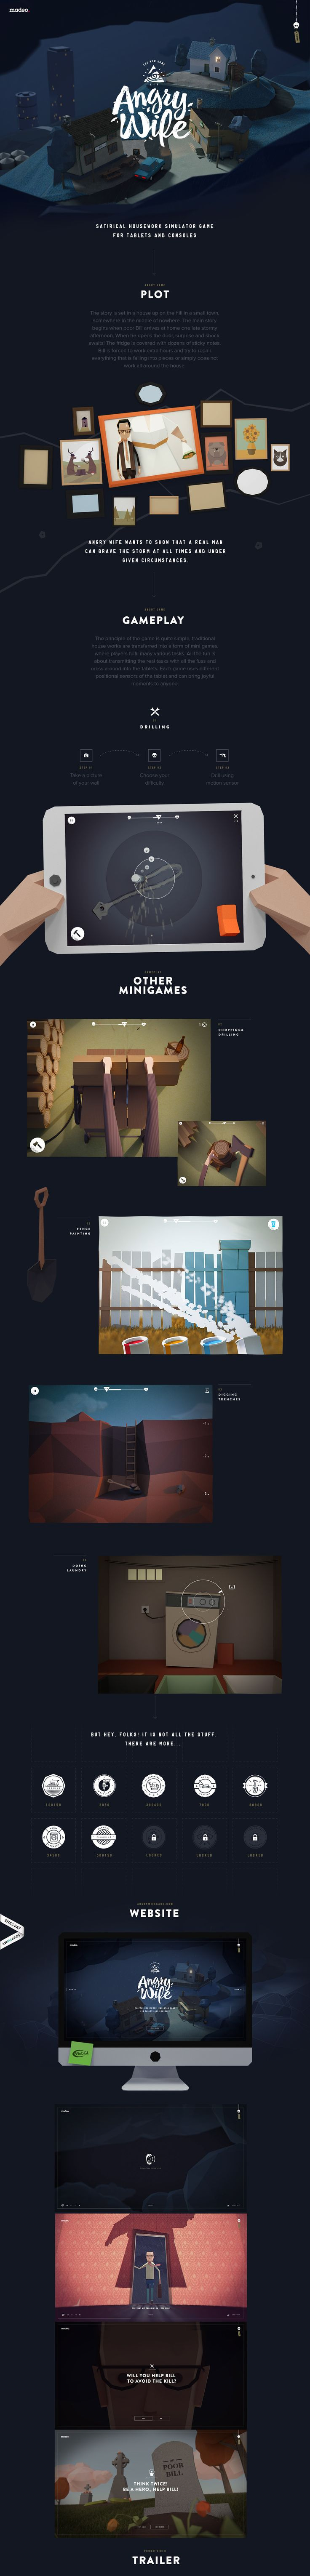 Angry Wife Game on Behance